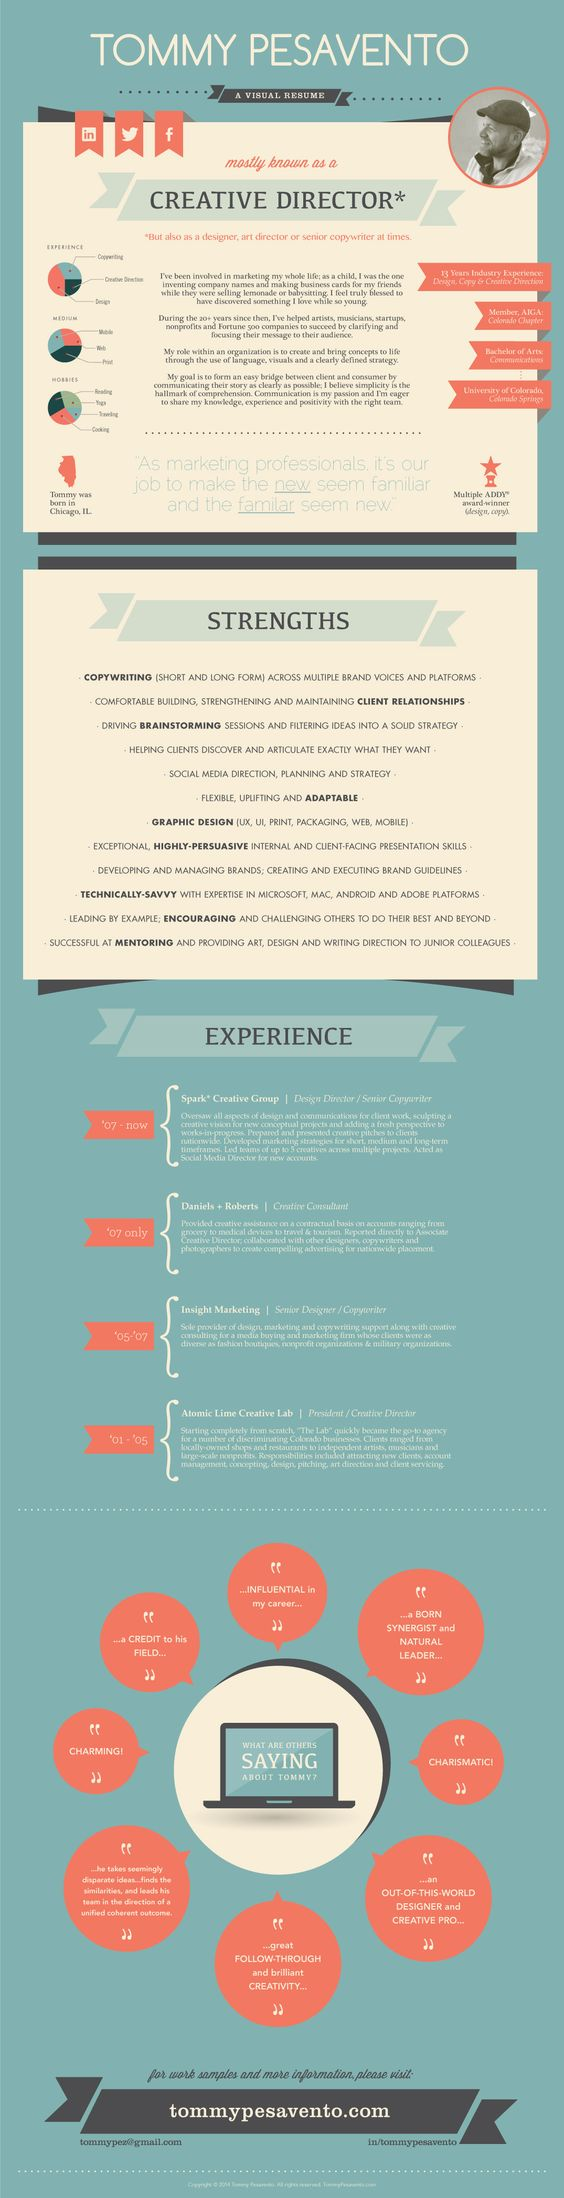 infographic my visual resume tommy pesavento infograf iacute as infographic my visual resume tommy pesavento